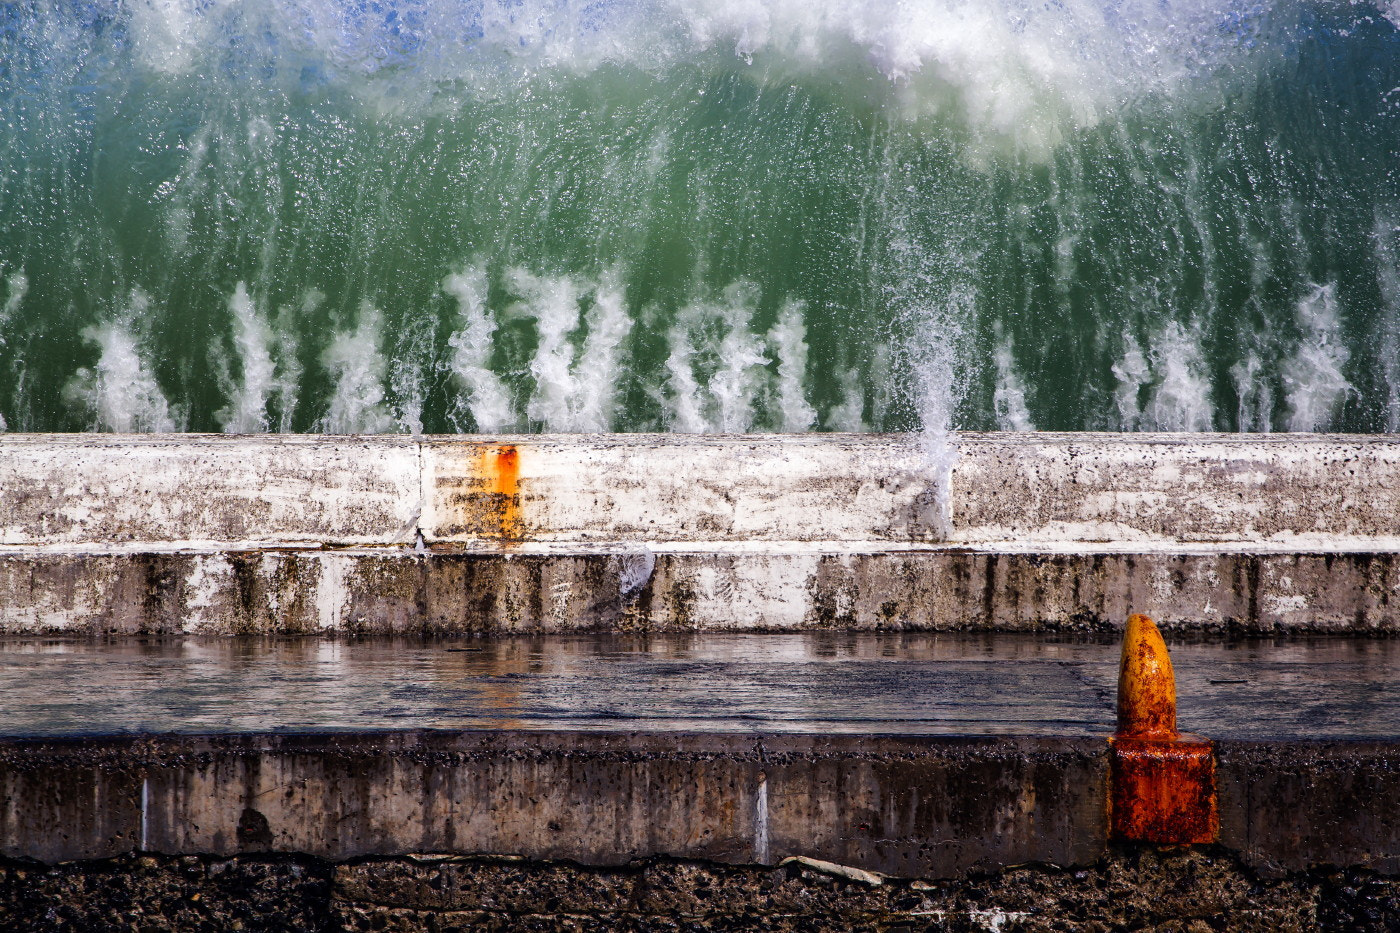 Photograph Breakwater by Michael Wrankmore on 500px